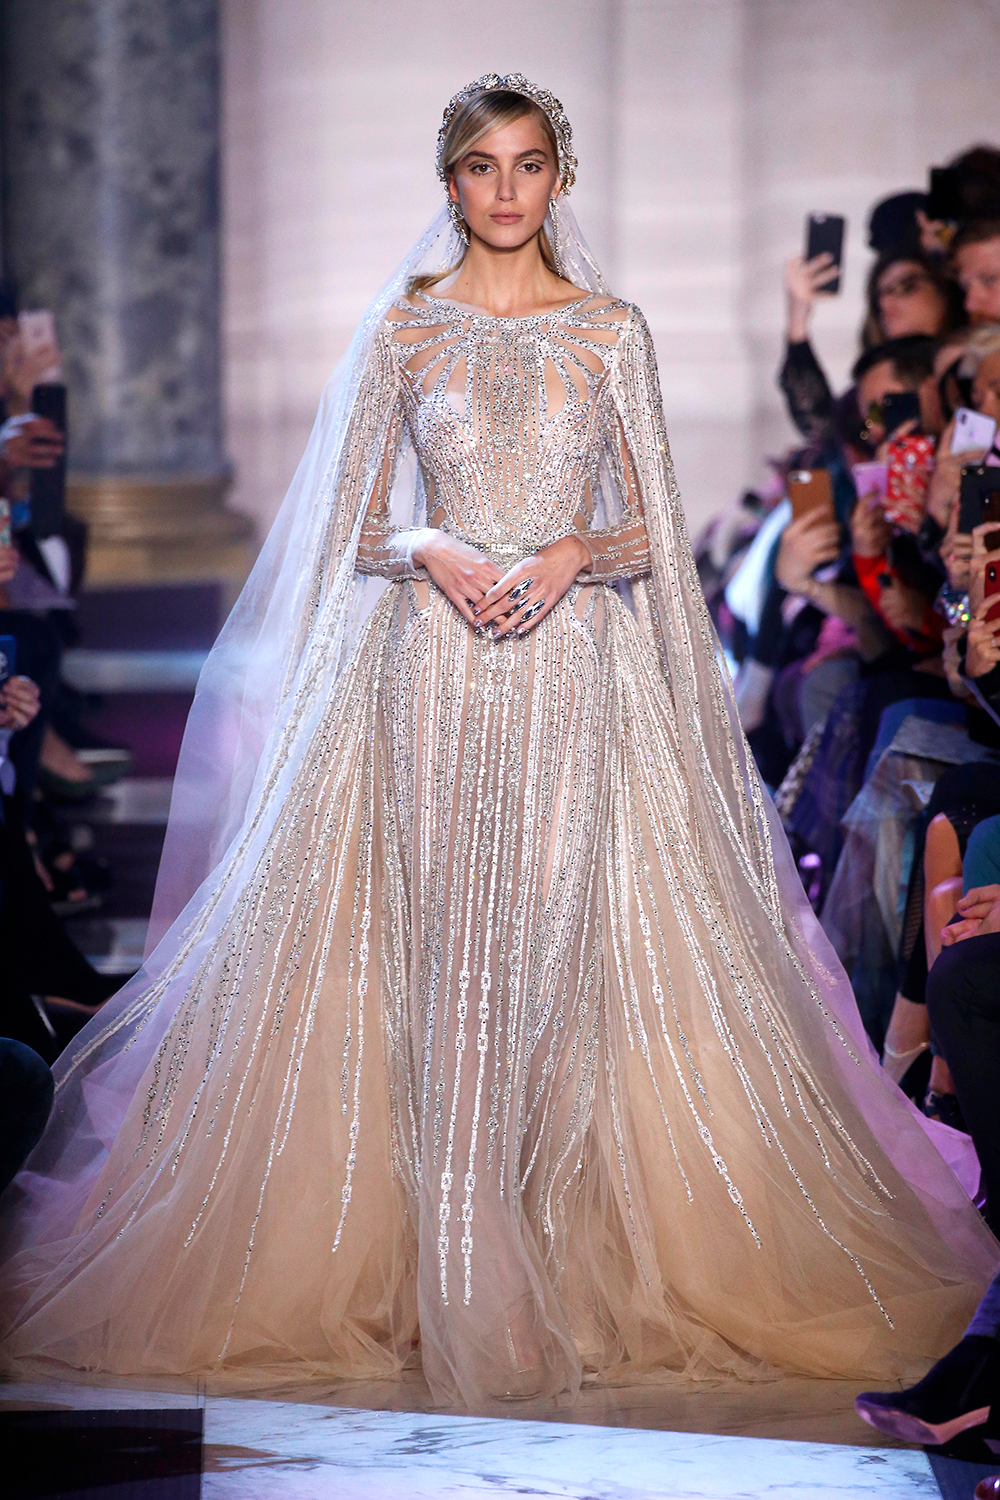 Elie Saab Couture Springsummer 2018 The 10 Best Dresses Marie Claire Australia: Elie Saab Couture Wedding Dress At Reisefeber.org